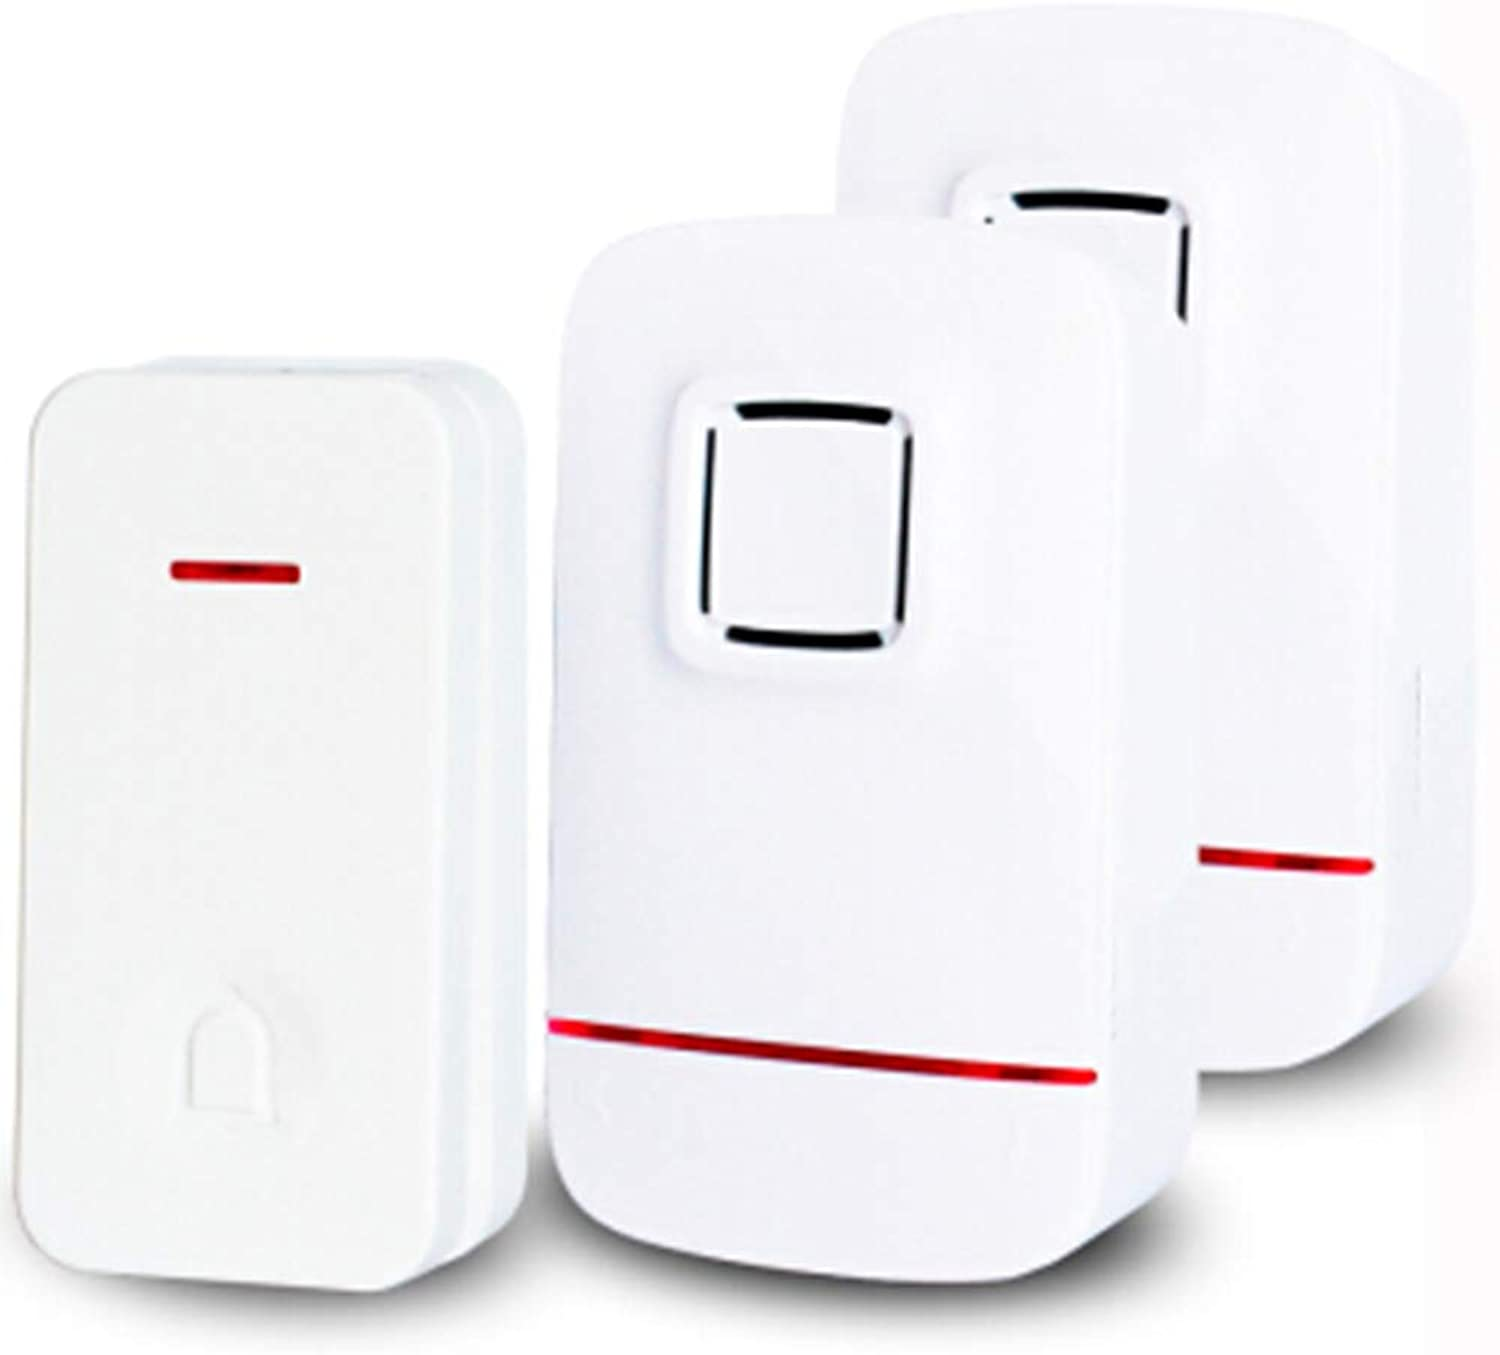 Home Wireless Doorbell, Plugin Receiver + Transmitter (SelfPowered), ABS Material, Home Company,White1transmitter+2Receiver